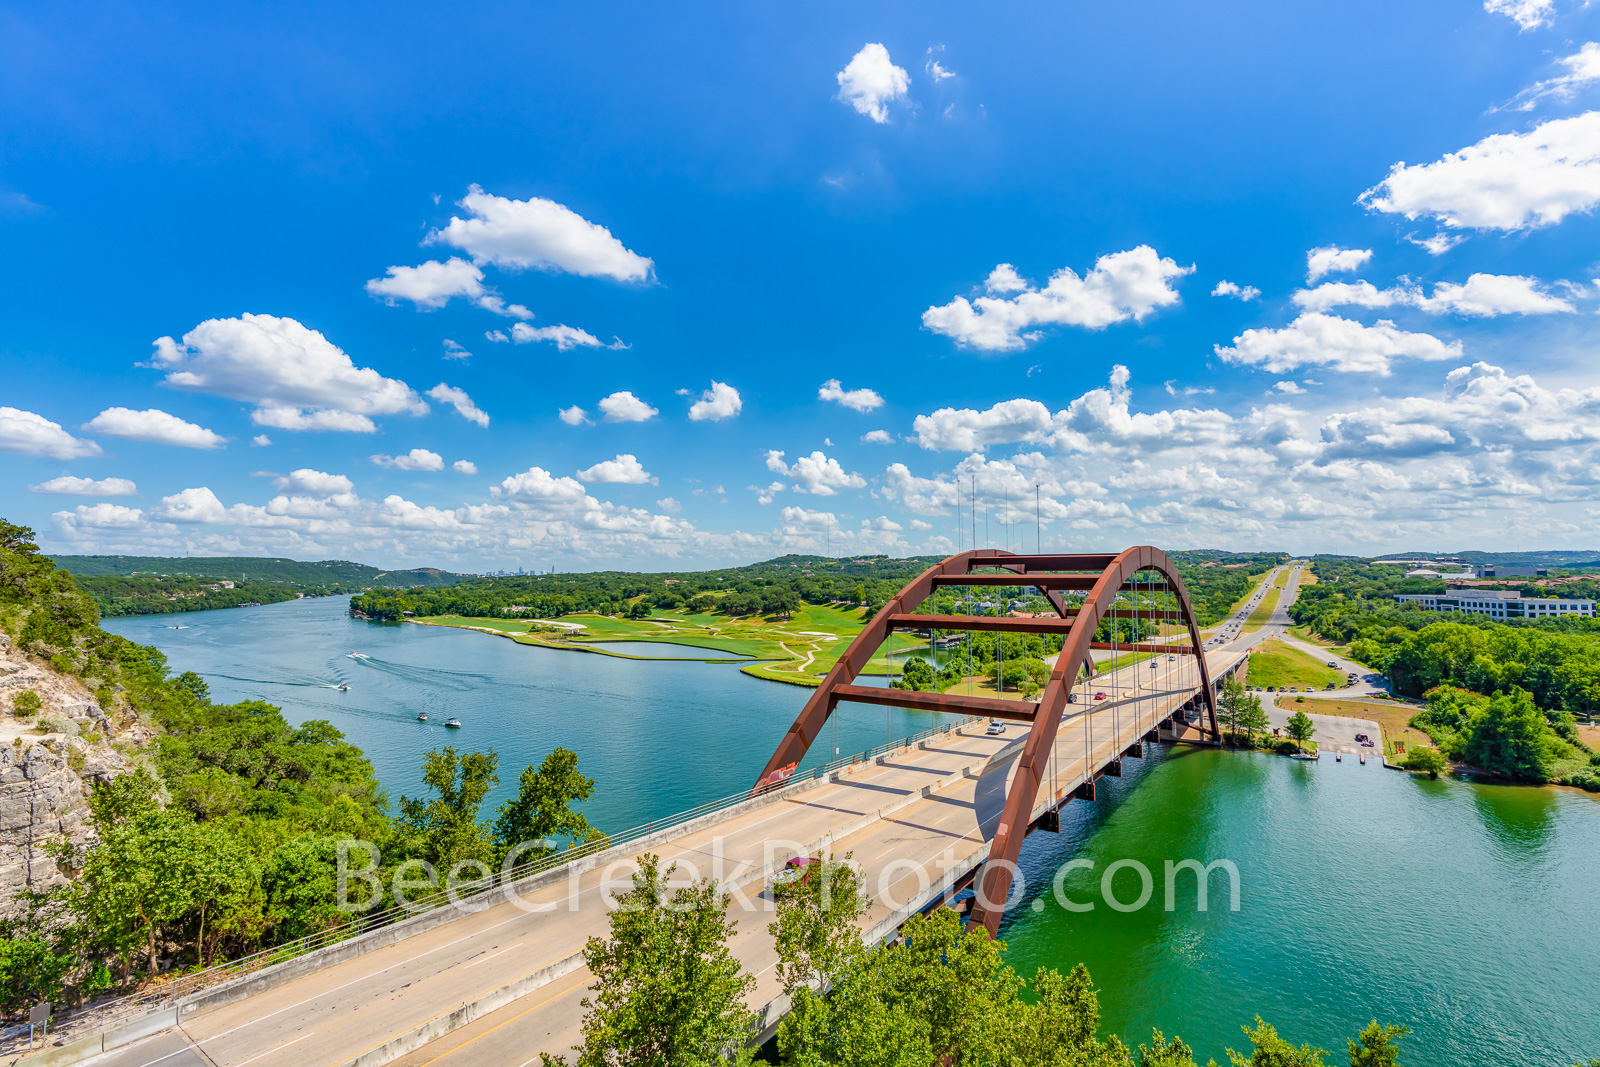 austin pennybacker overlook, austin 360 bridge, pennybacker bridge, capitol of texas highway, texas hill country, lake austin, austin texas, capitol of texas hwy,  texas, colorado river, rivers, 360 b, photo